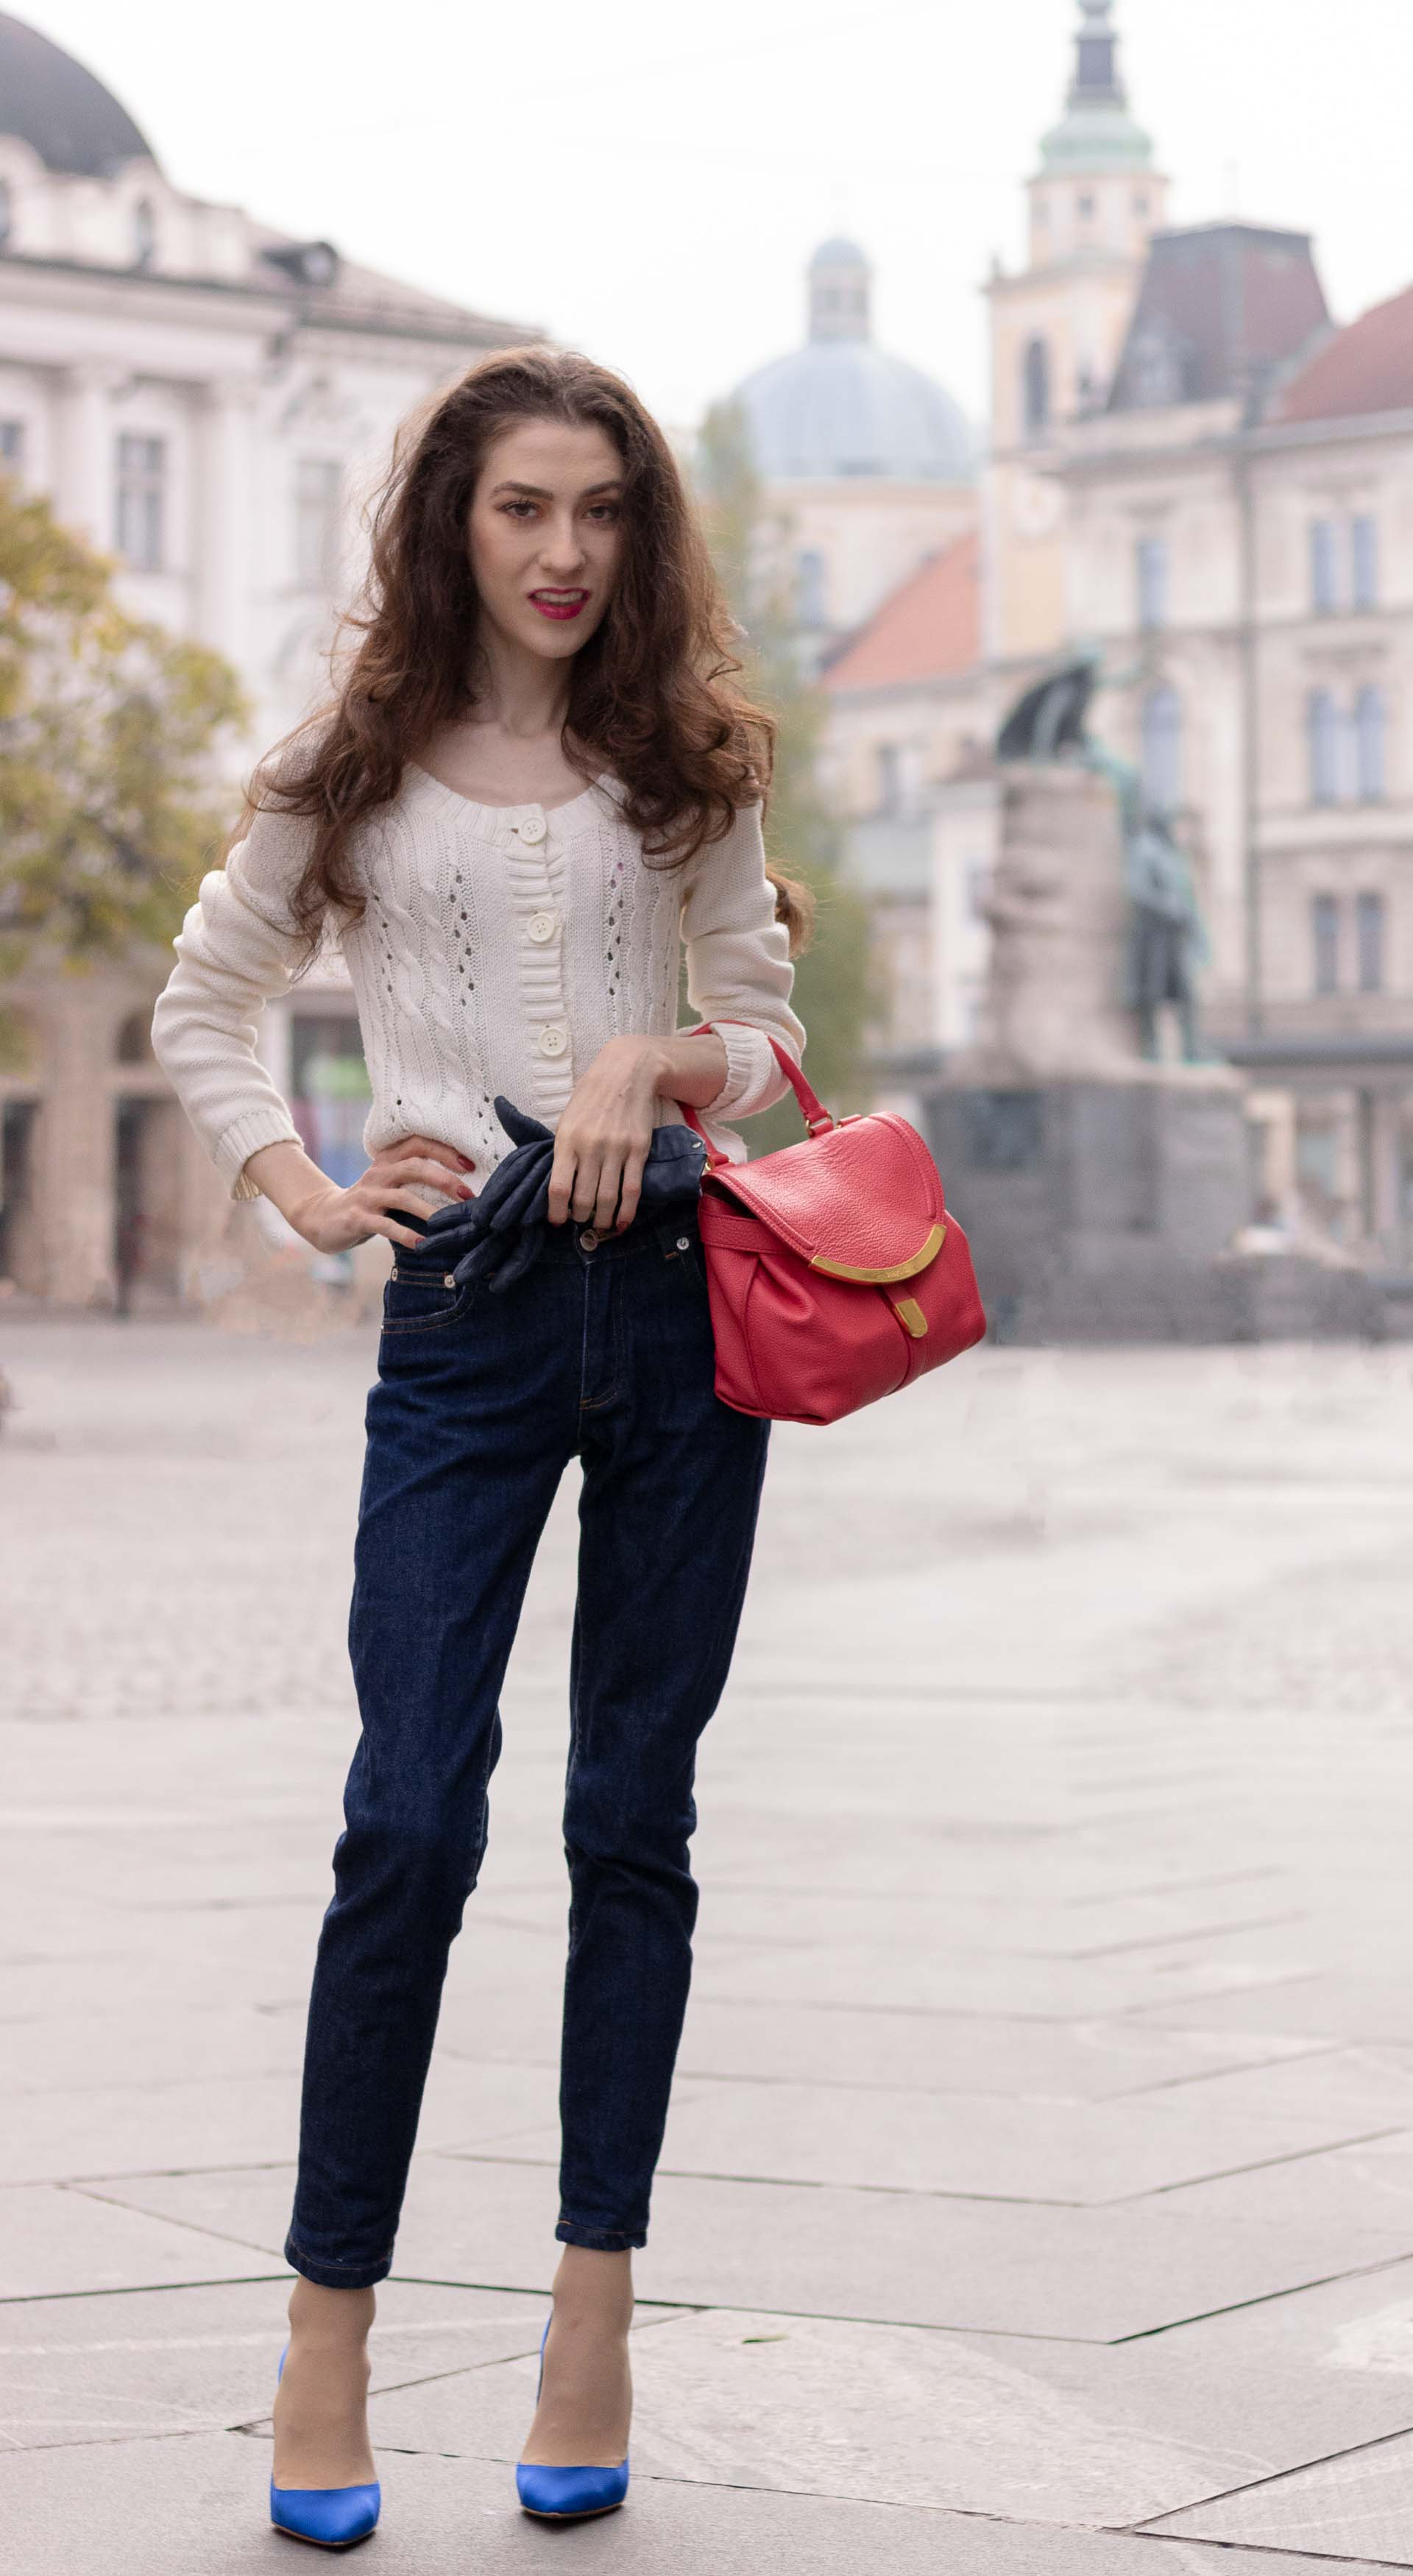 Beautiful Slovenian Fashion Blogger Veronika Lipar of Brunette from Wall dressed in white Mango cardigan tucked into dark blue denim jeans from a.p.c., blue Gianvito Rossi pumps, pink top handle bag standing on the street